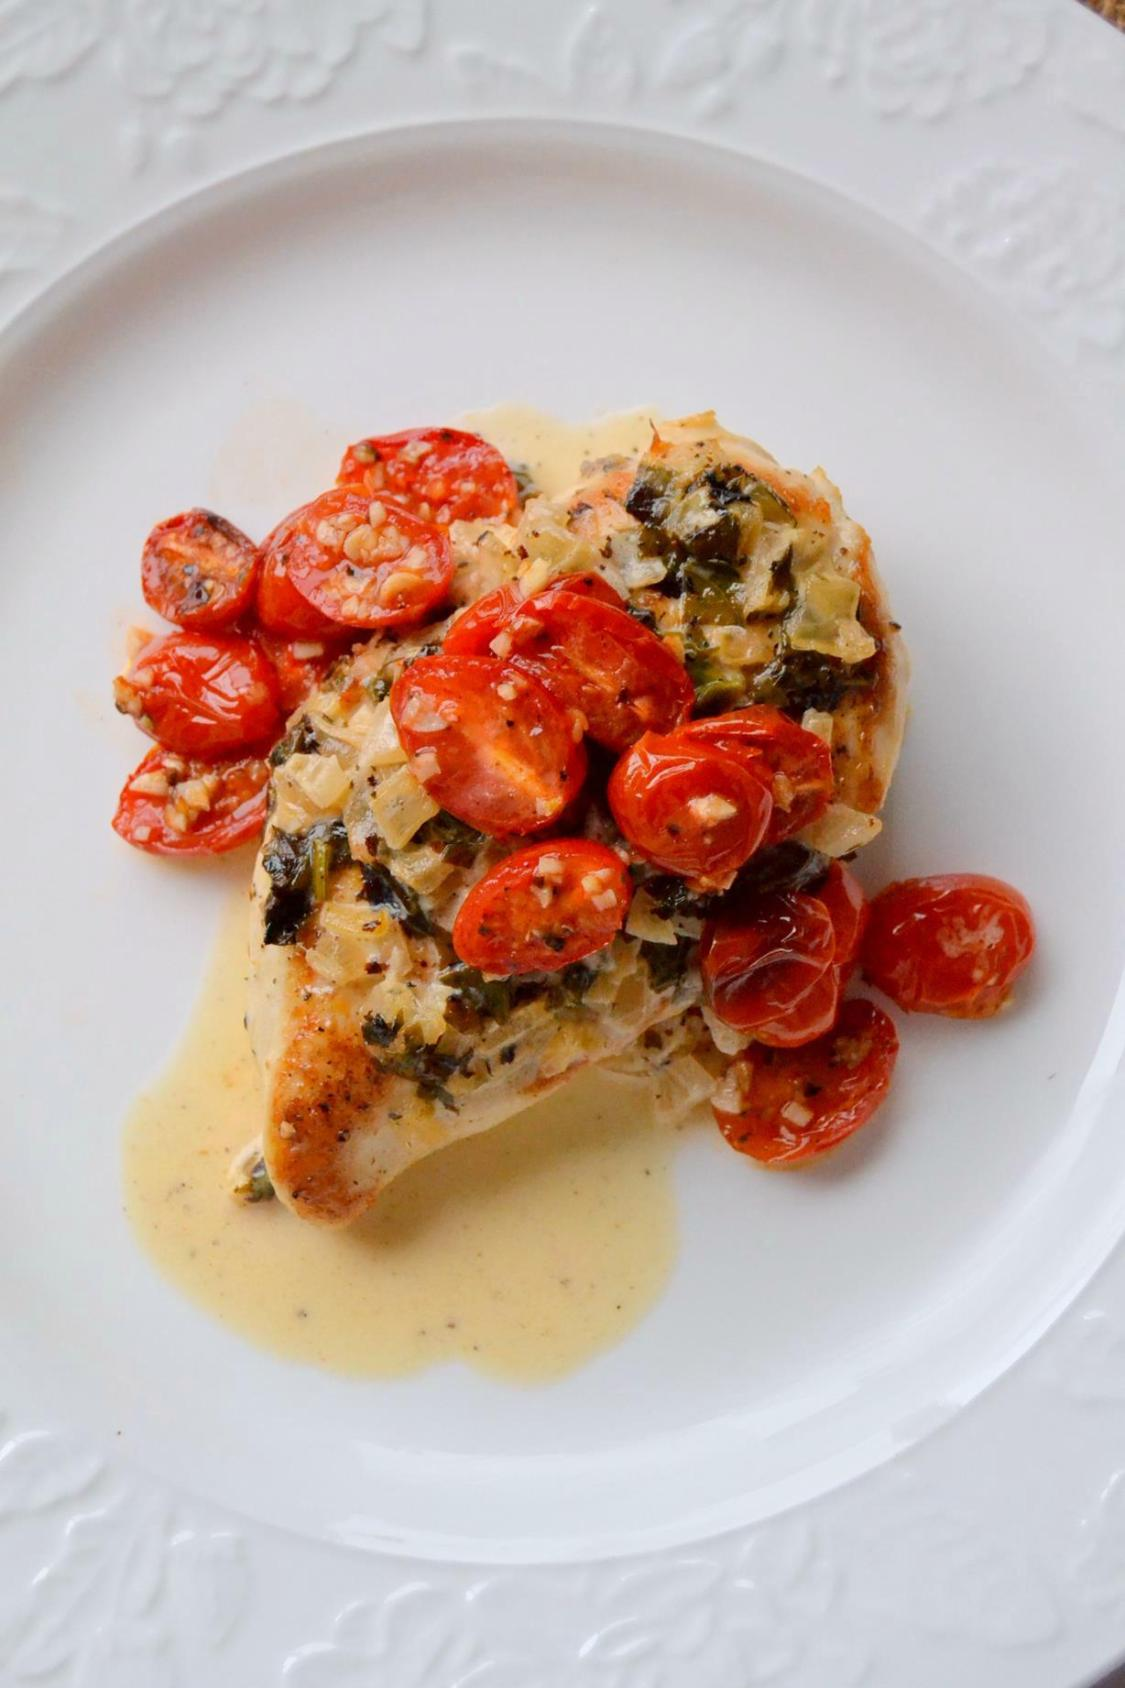 Tattooed Martha - Chicken in Basil Cream Sauce with Roasted Tomatoes (6)